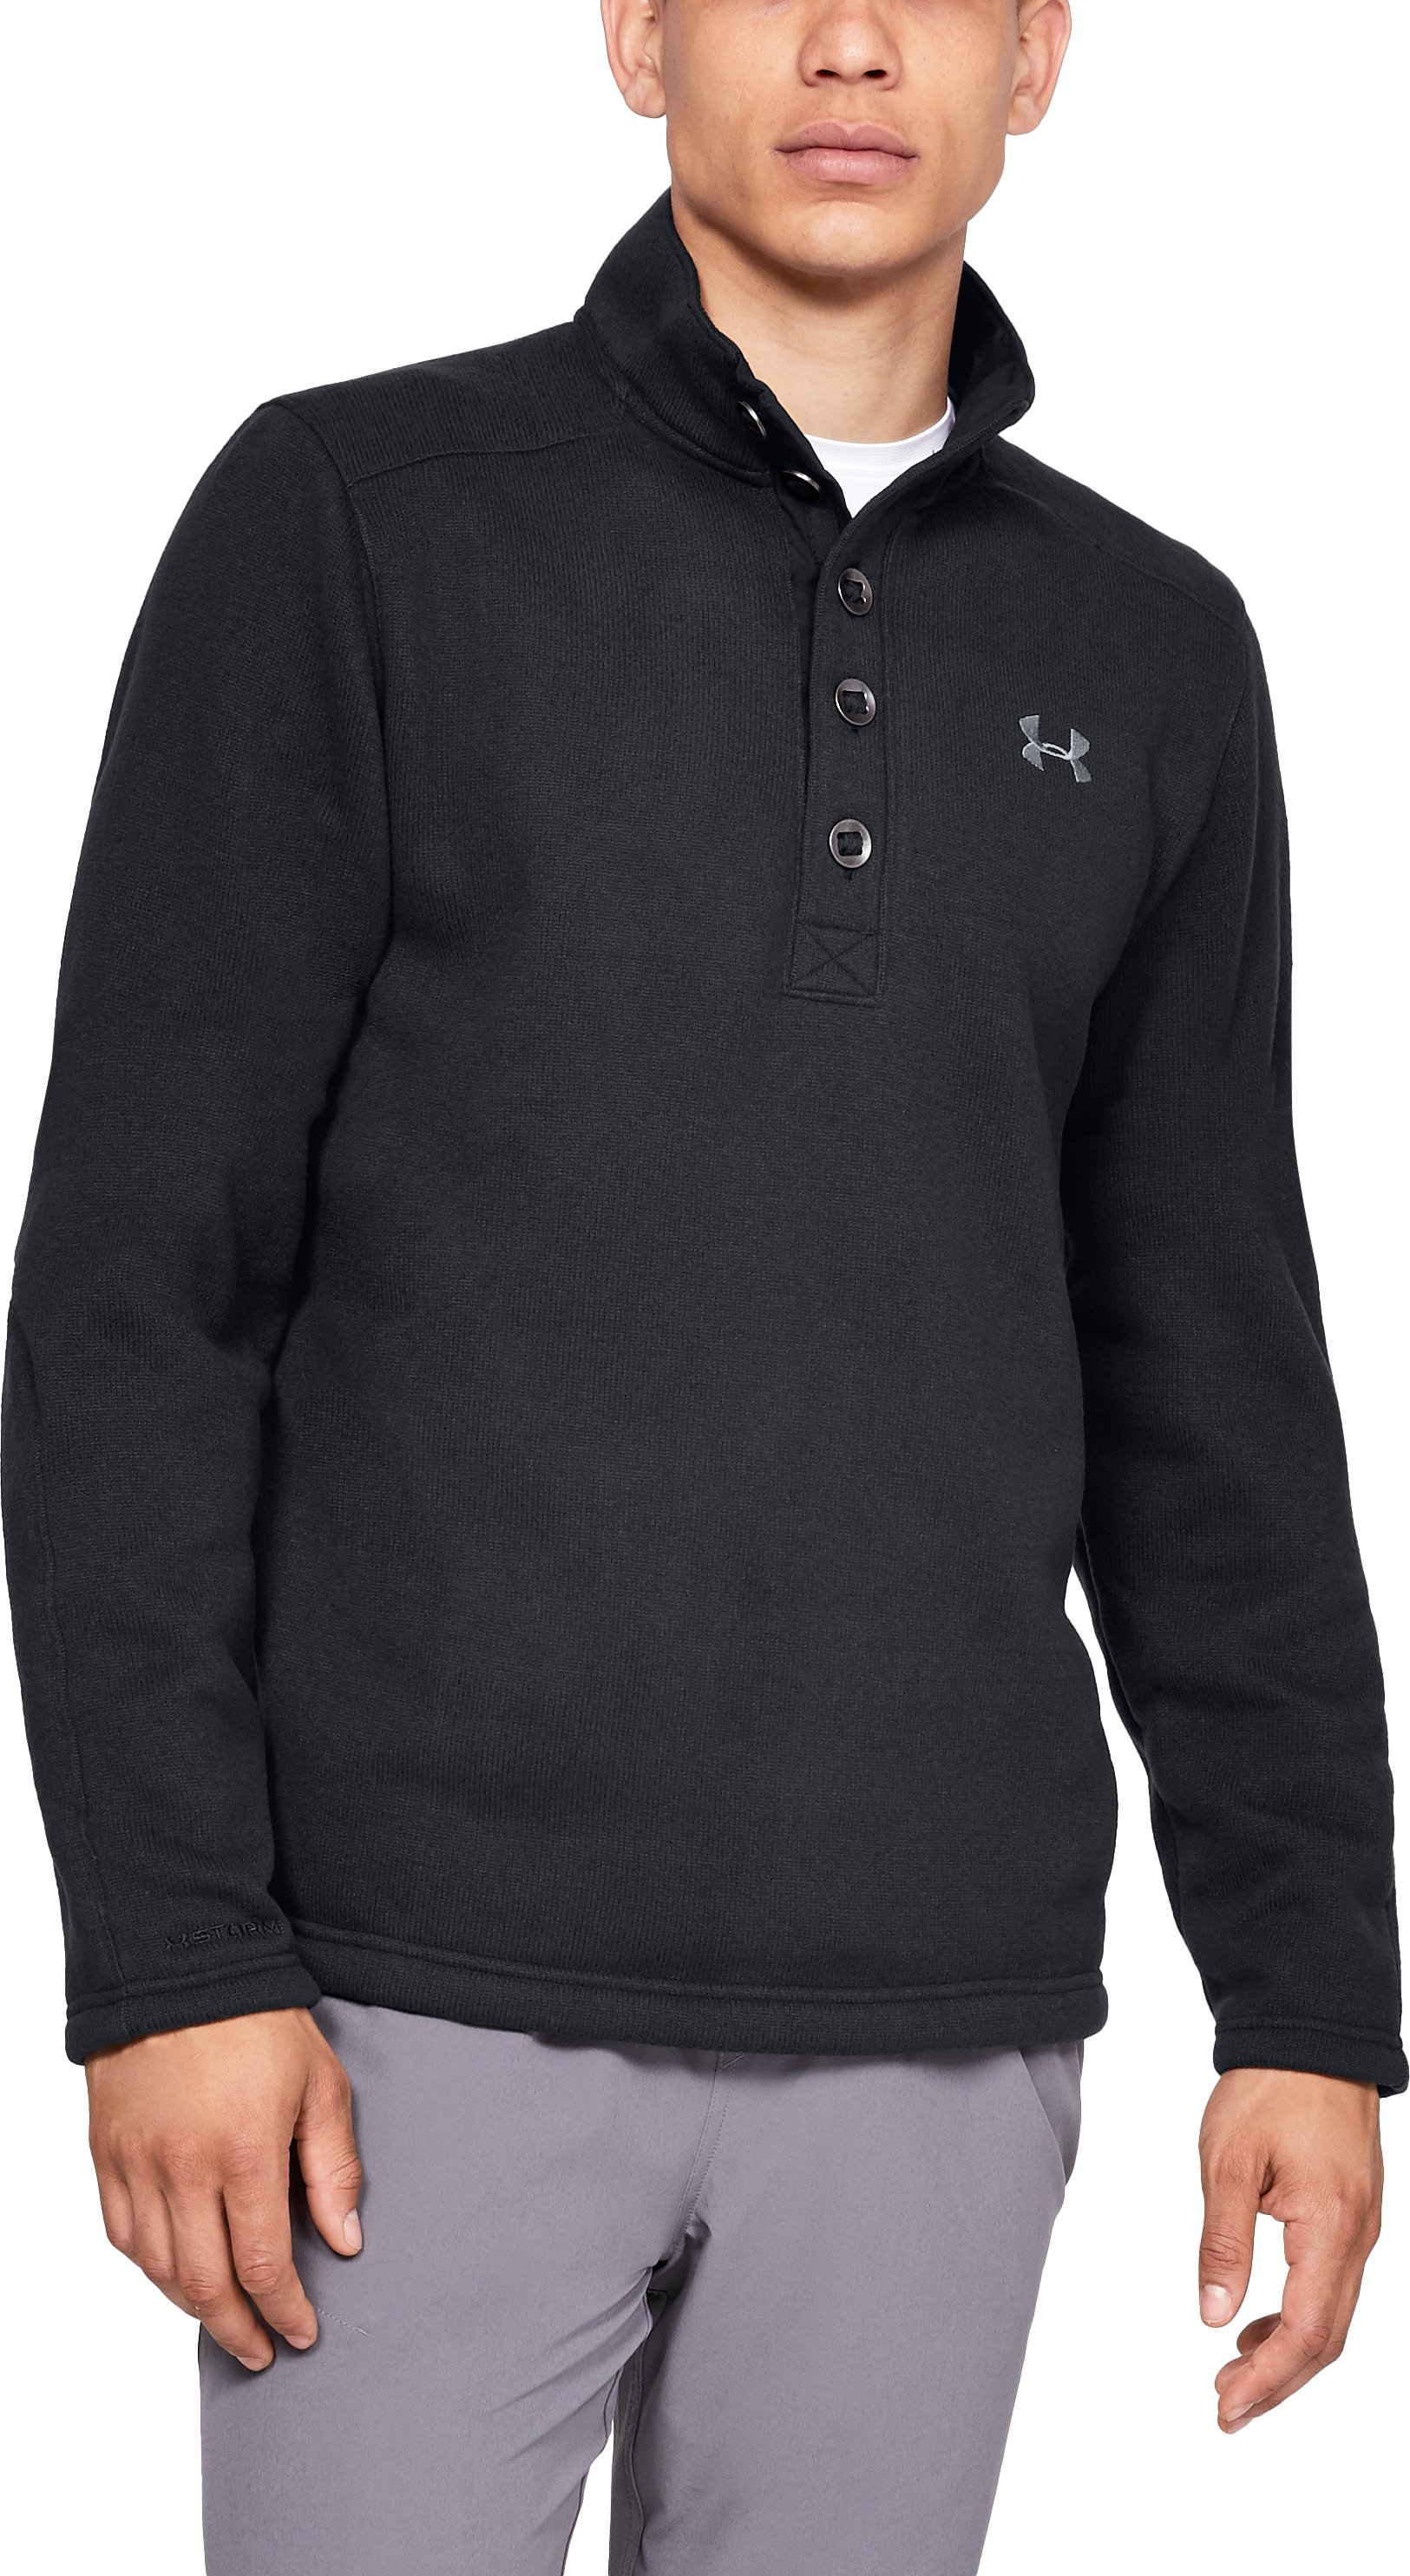 small sweaters Men's UA Storm Specialist Sweater Great look and feel....Almost perfect...It fits great.